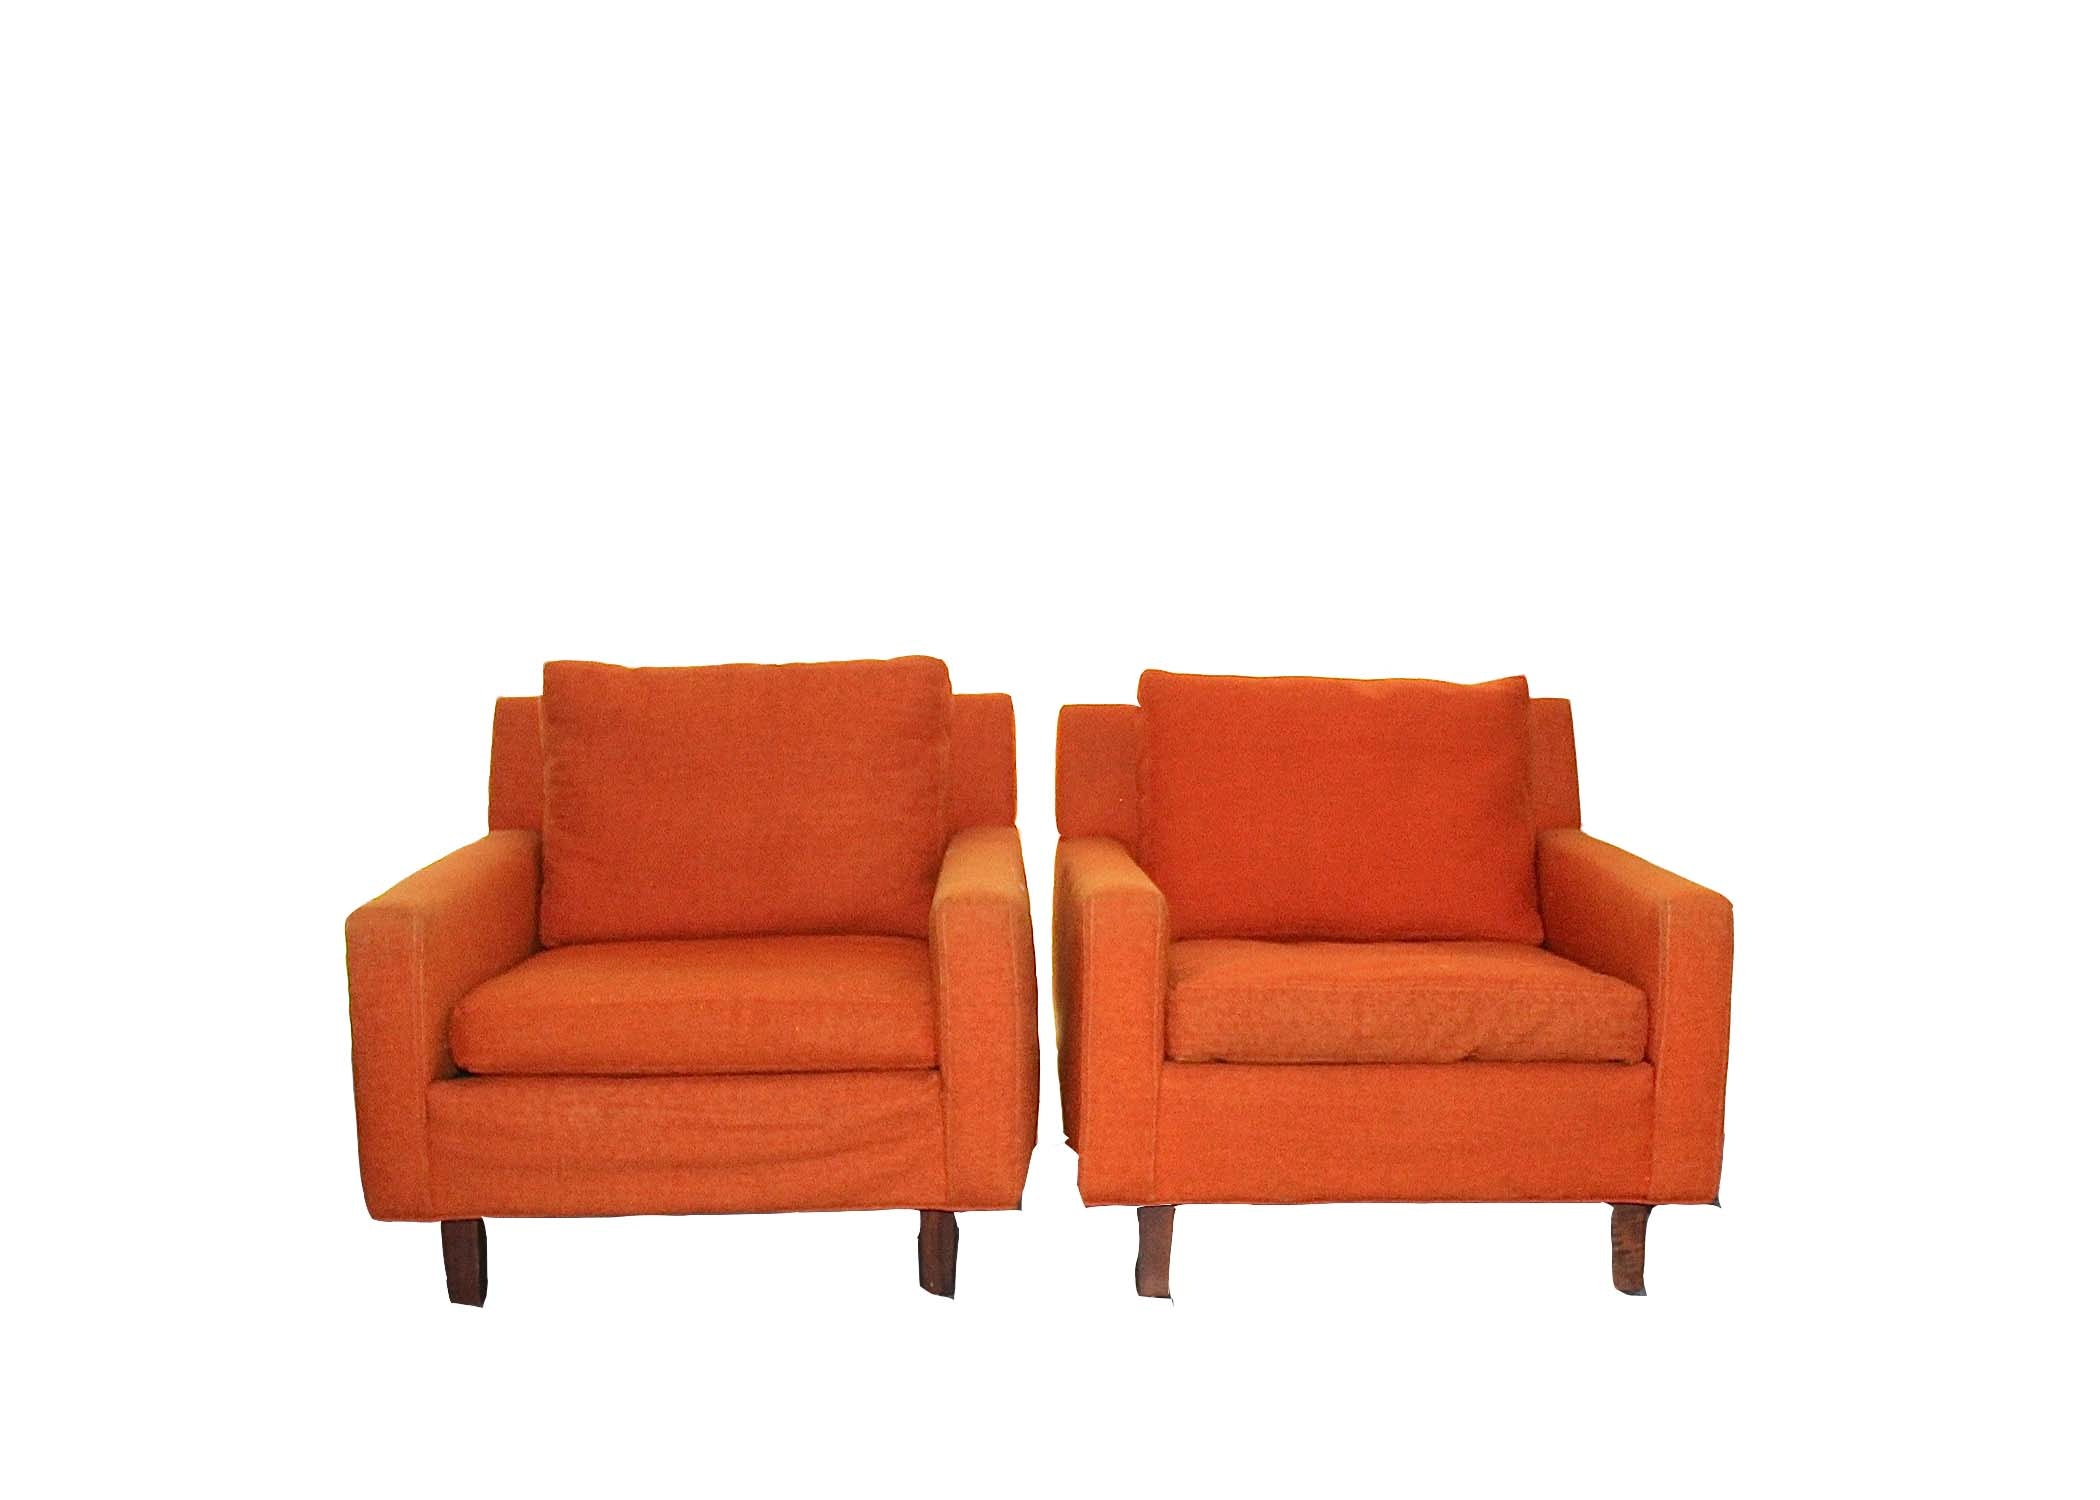 Mid Century Modern Upholstered Orange Arm Chairs